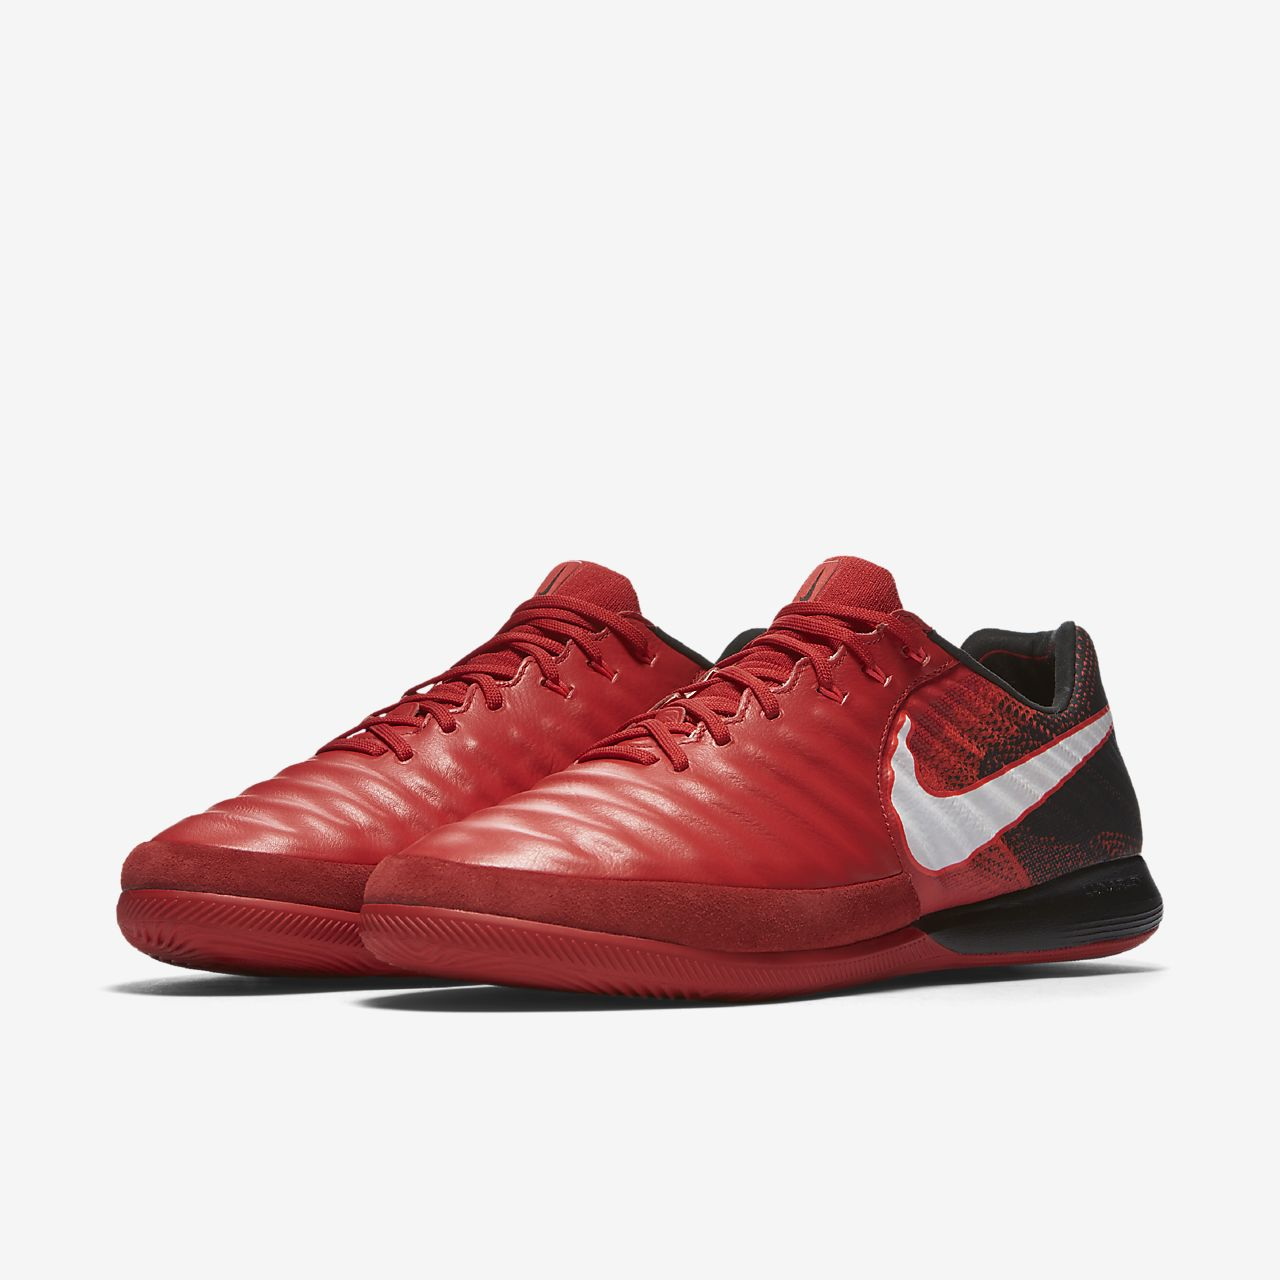 Nike TiempoX Proximo II Indoor/Court Women's Football Shoes Red/Black/White yC7575B